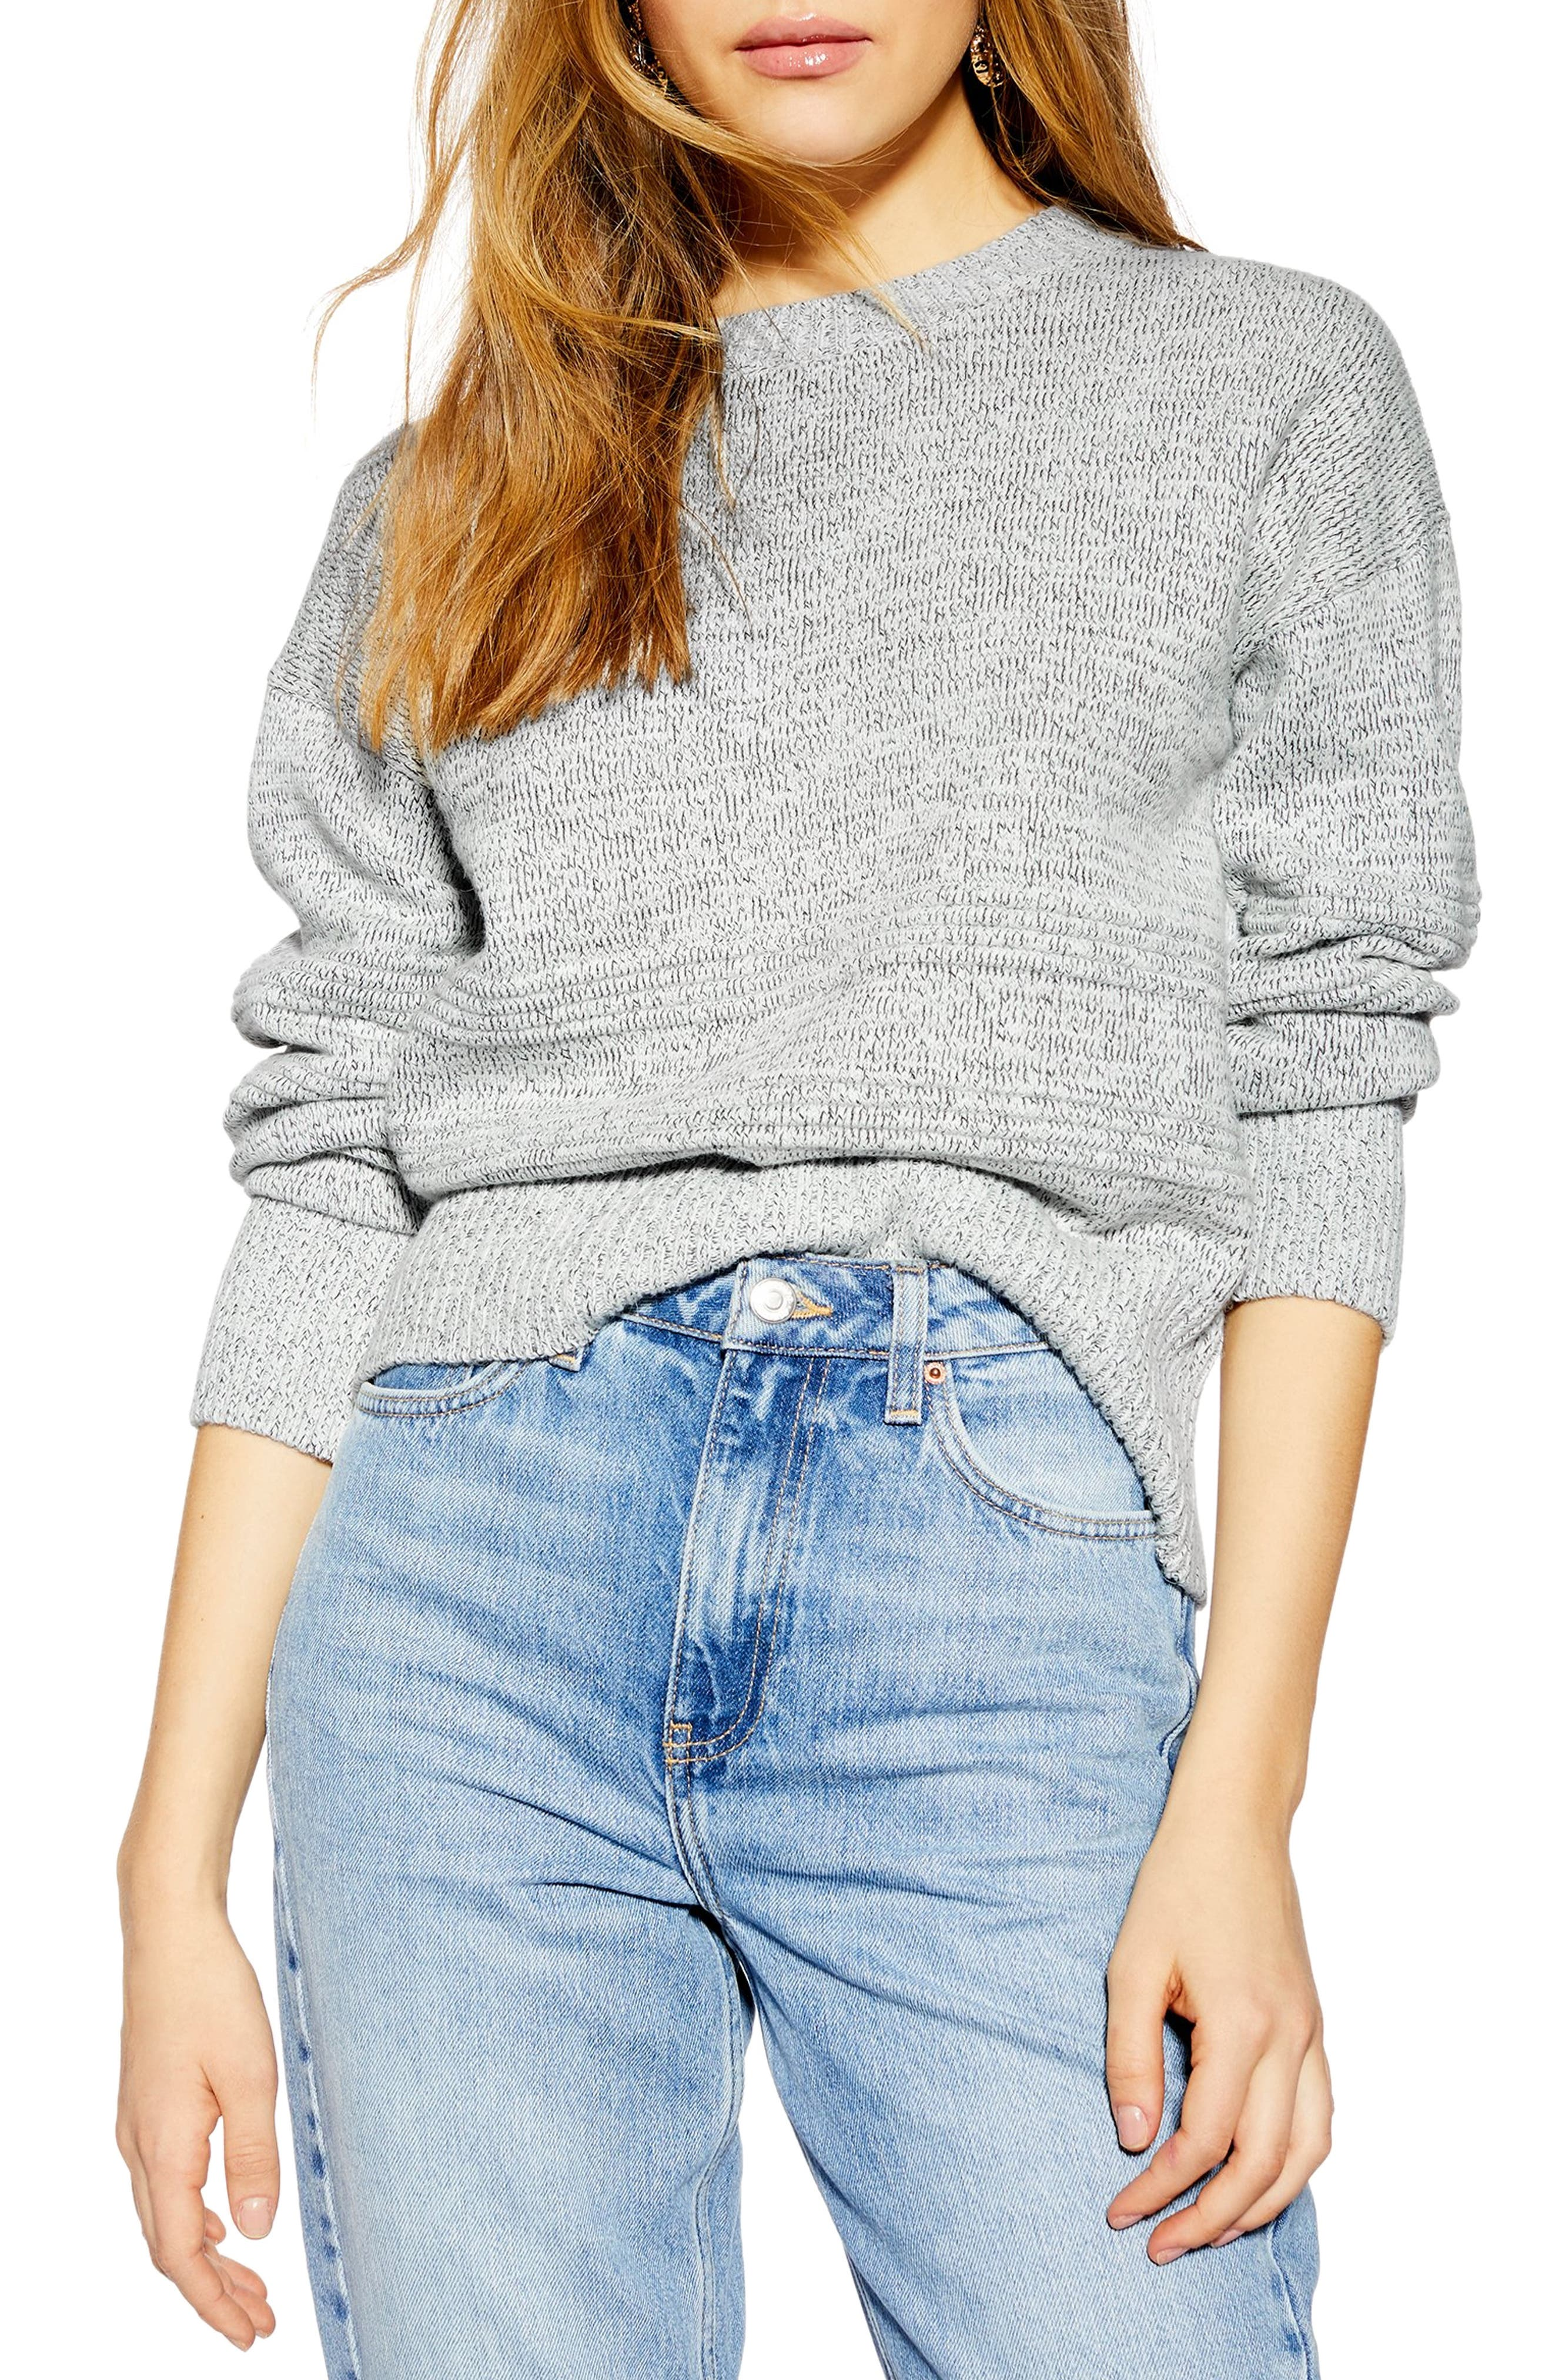 TOPSHOP, Ottoman Stitch Sweater, Main thumbnail 1, color, GREY MARL